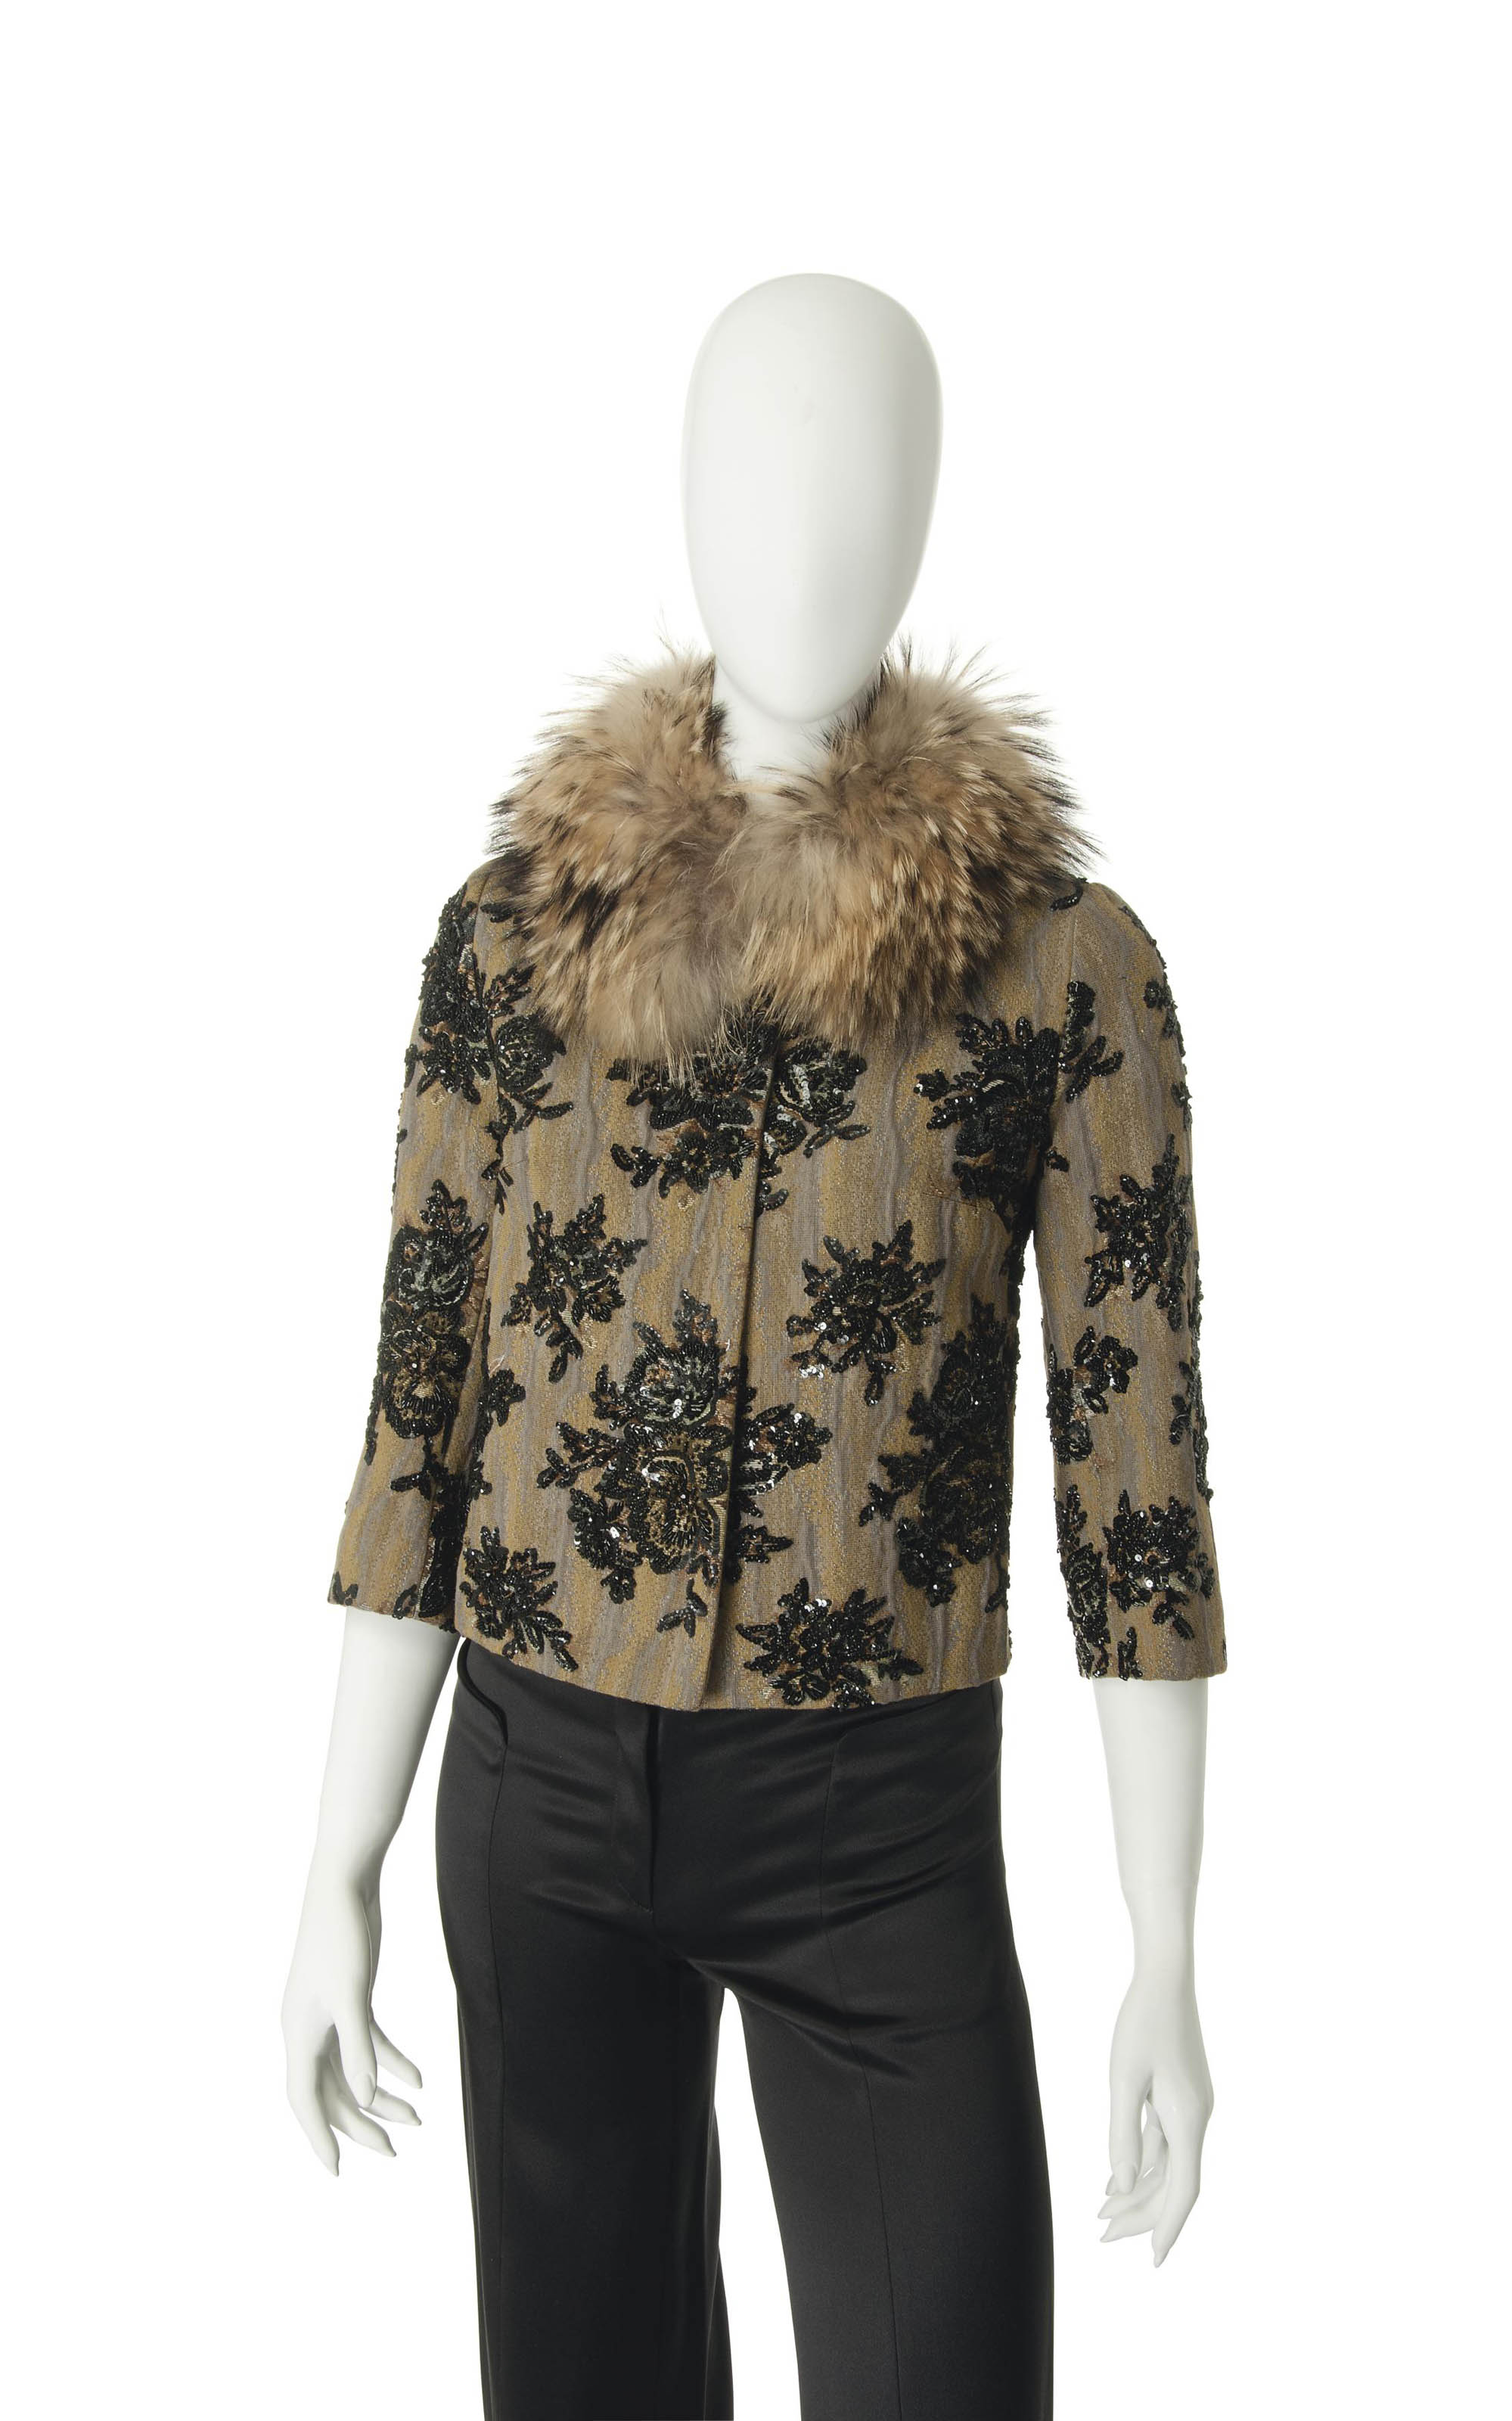 A CROPPED JACKET WITH FUR COLLAR